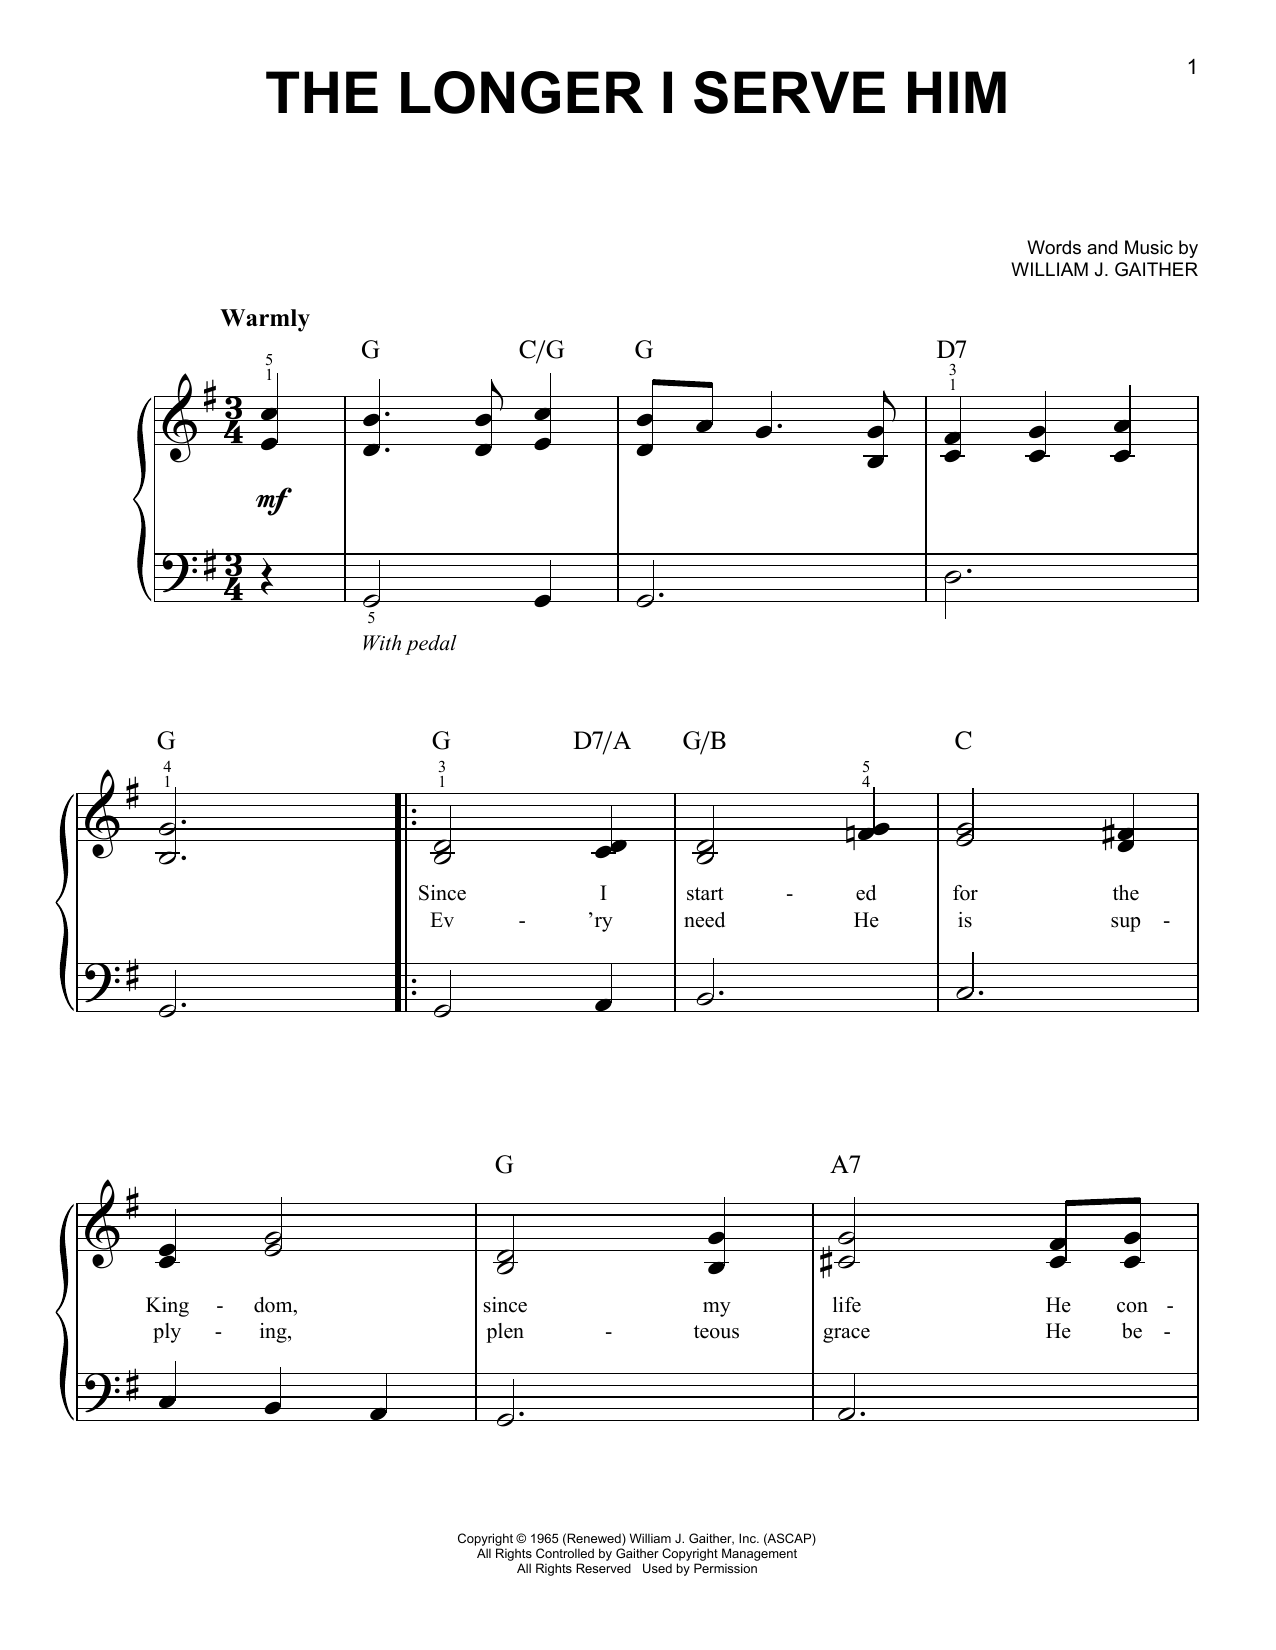 William J. Gaither The Longer I Serve Him sheet music notes and chords. Download Printable PDF.